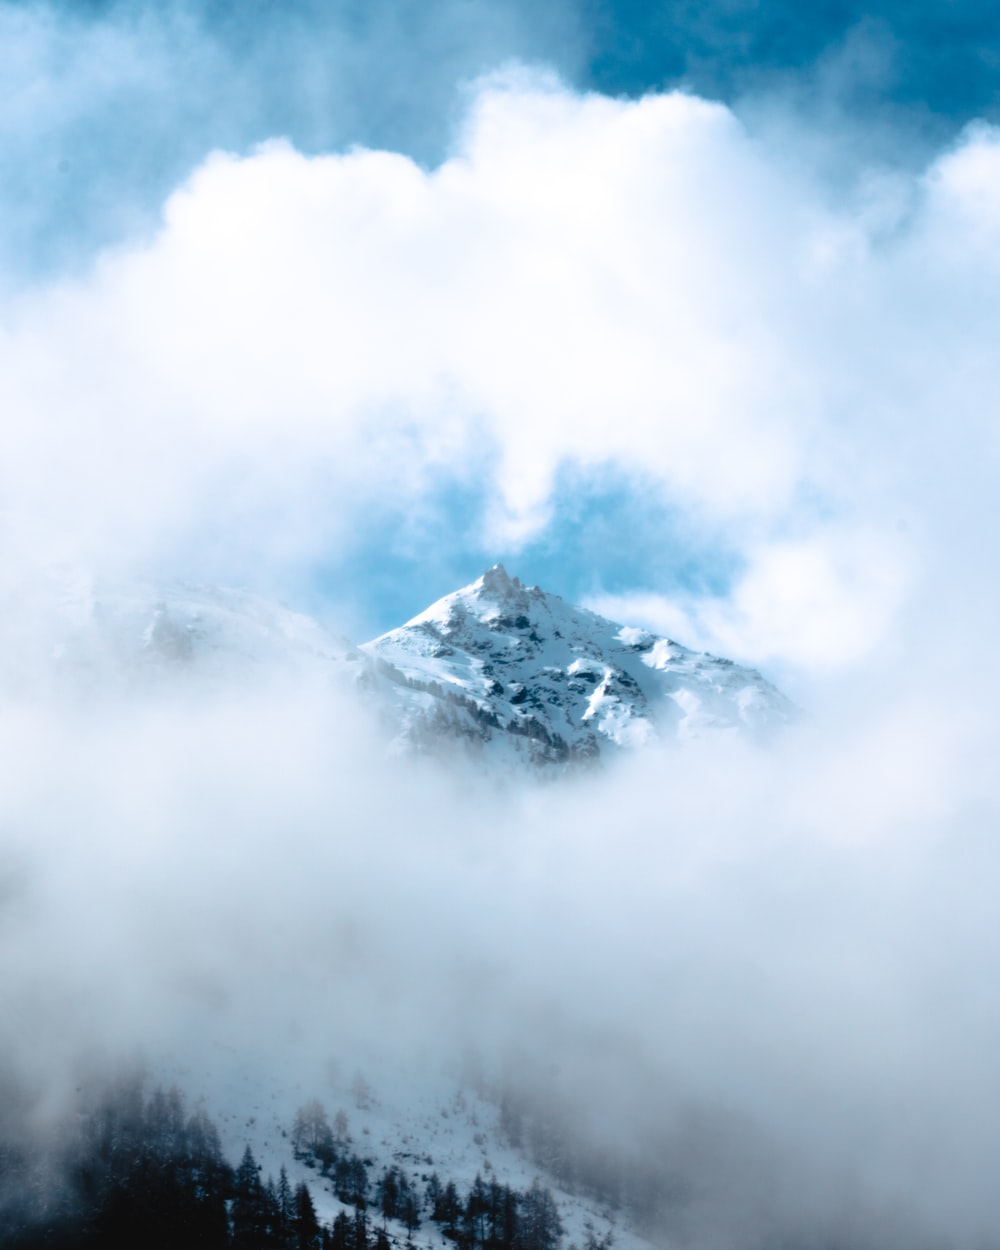 snow covered mountain under white clouds during daytime